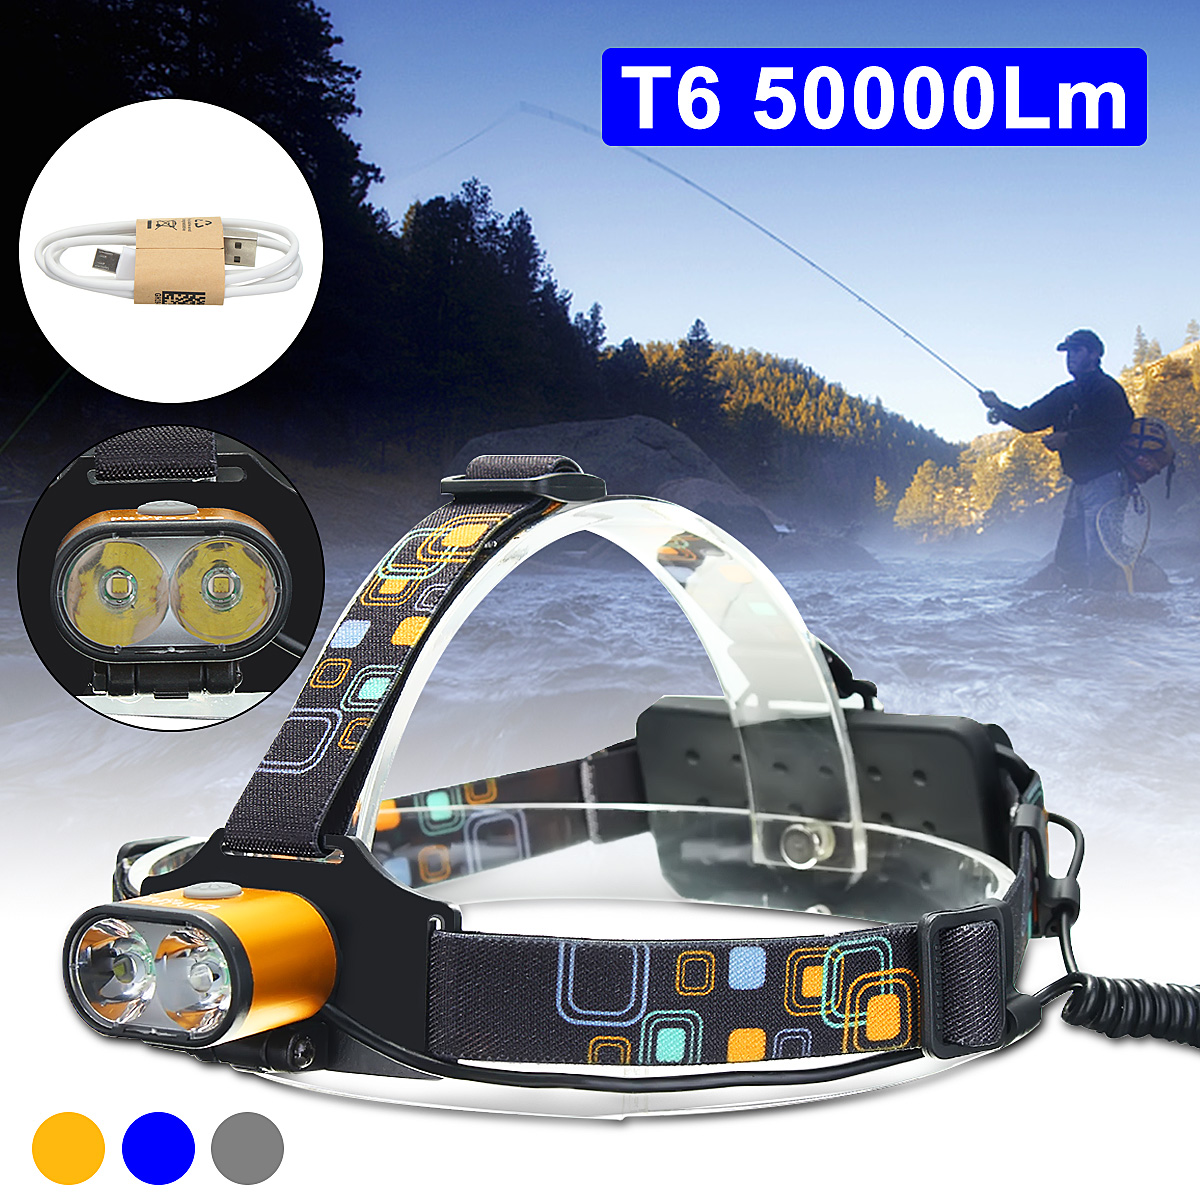 15000 Lumens LED Headlamp Waterproof Fishing Headlight USB Rechargeable Head Light Use 2*18650 Batteries Lamp For Camping usb rechargeable headlight cob led headlamp 3 modes head torch flashlight for camping use 2 18650 batteries